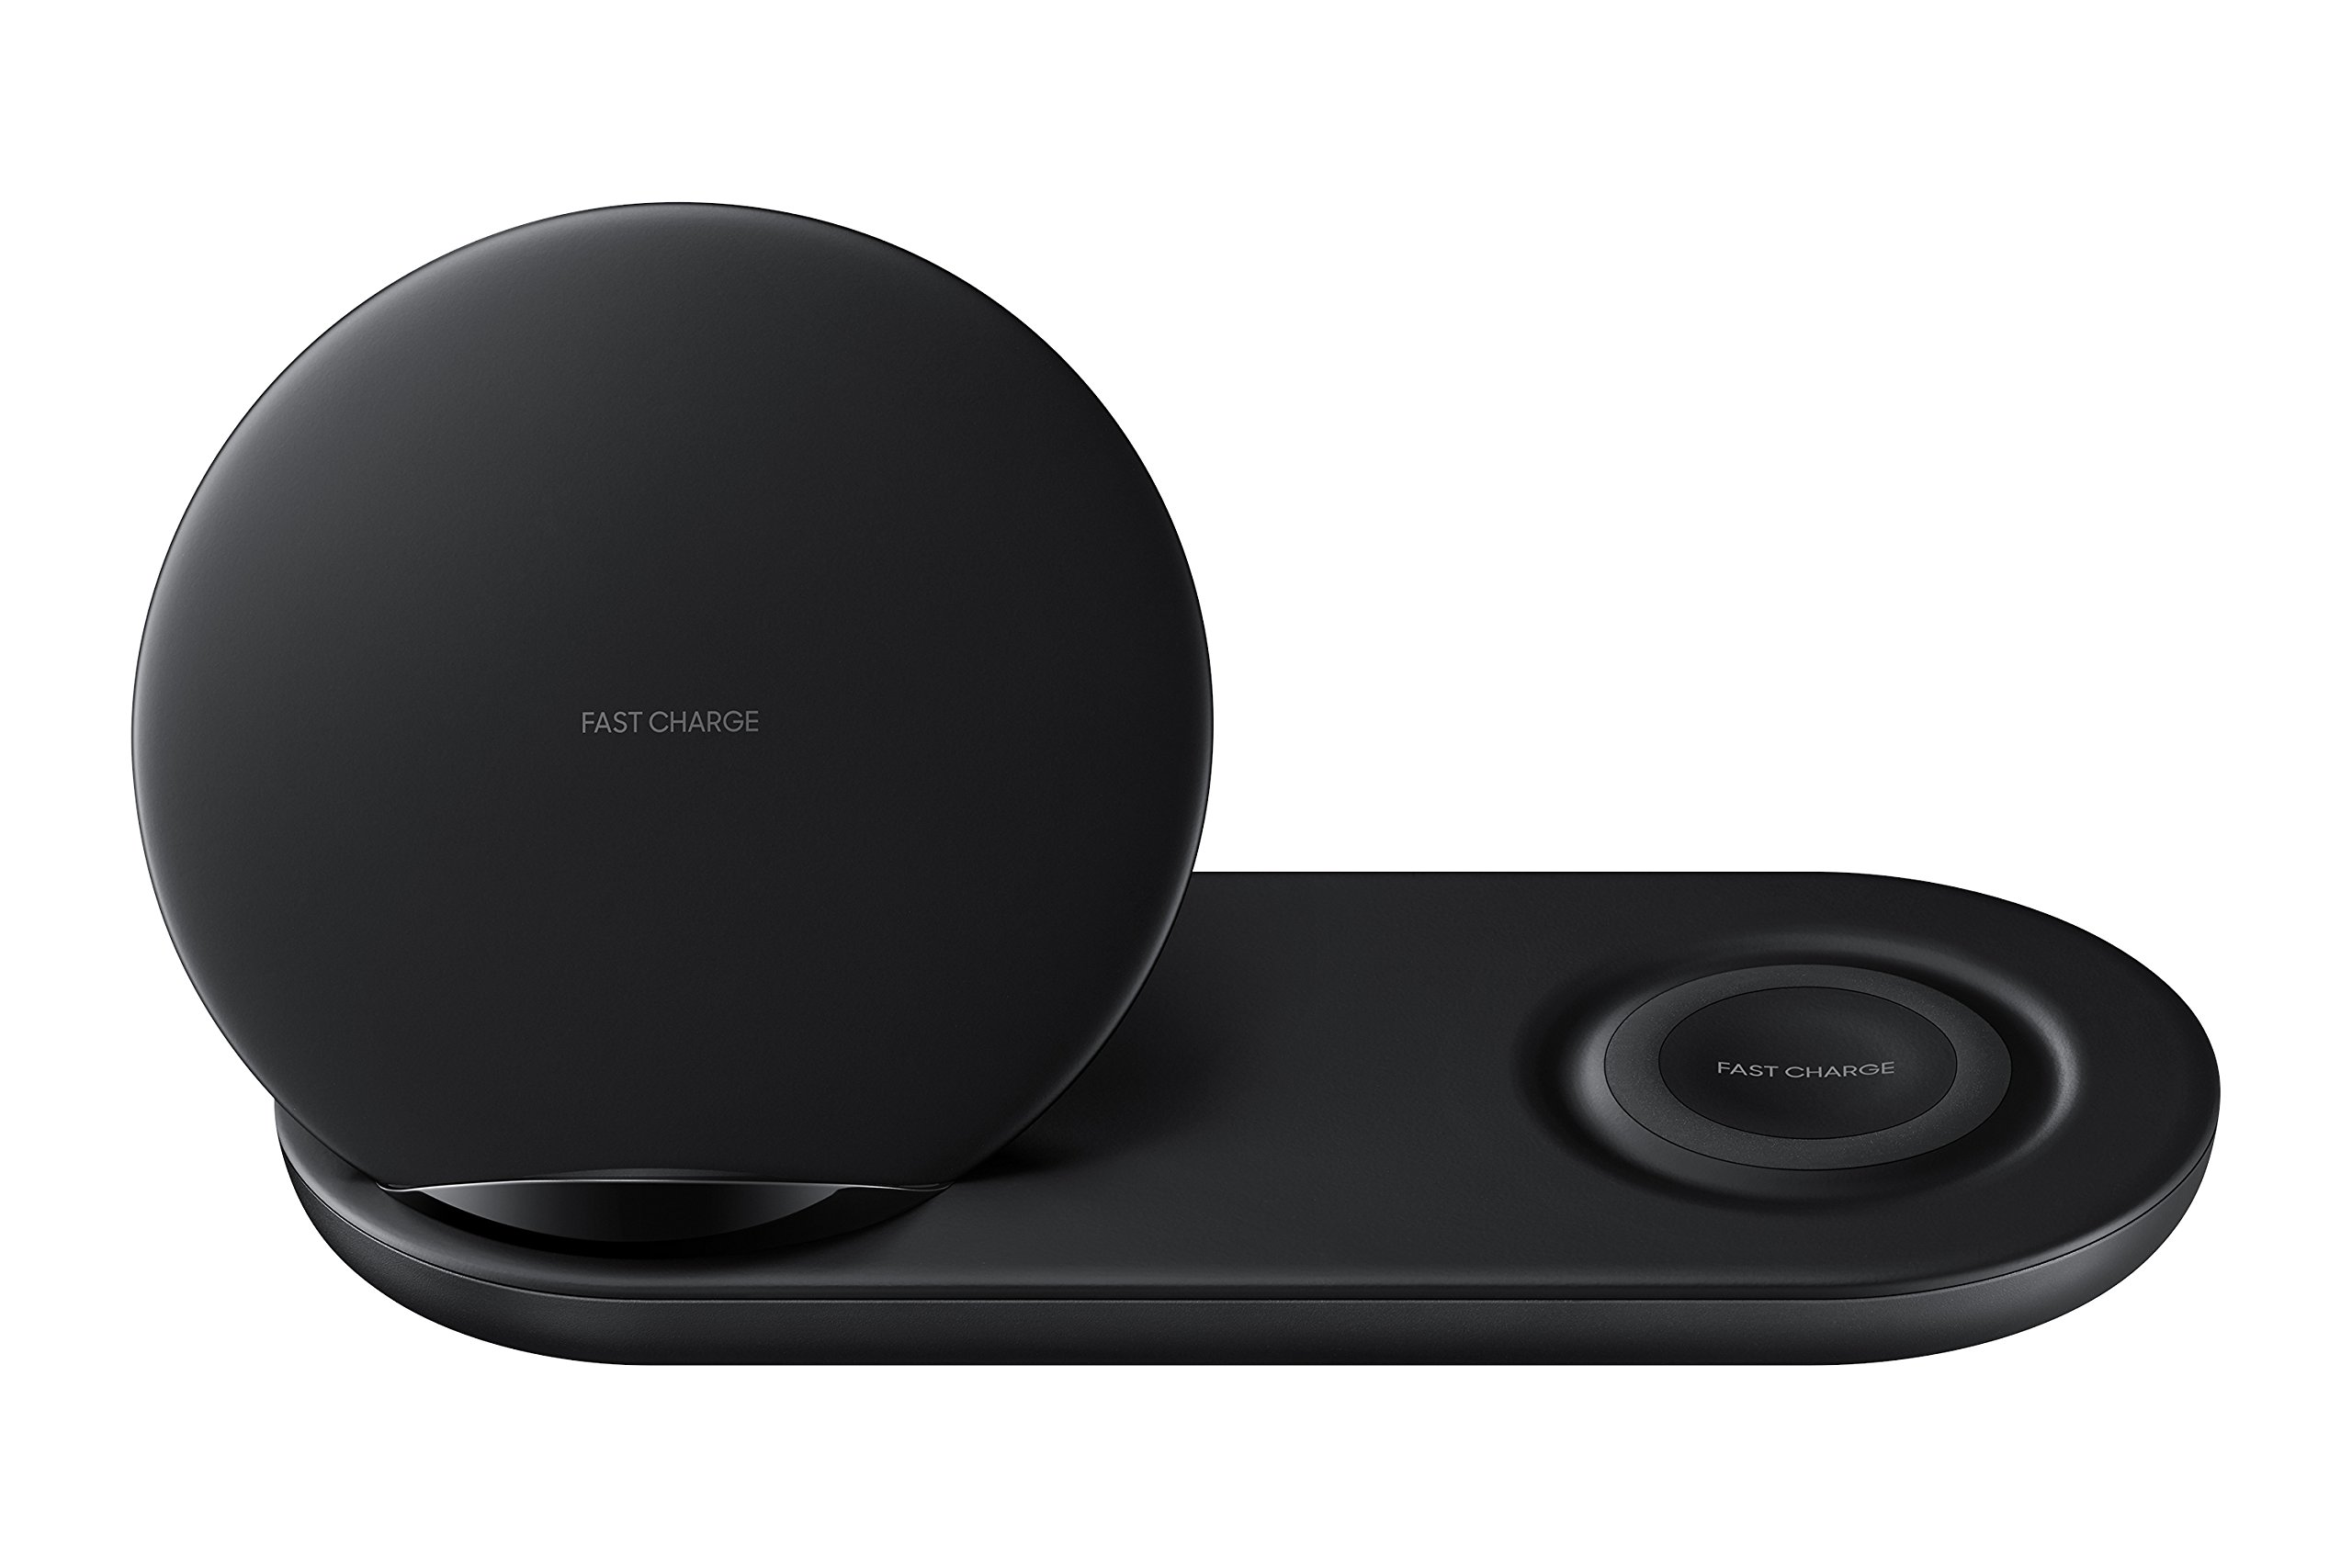 Samsung Wireless Charger Duo Fast Charge Stand & Pad Universally Compatible with Qi Enabled Phones and Select Samsung Watches (US Version), Black by Samsung